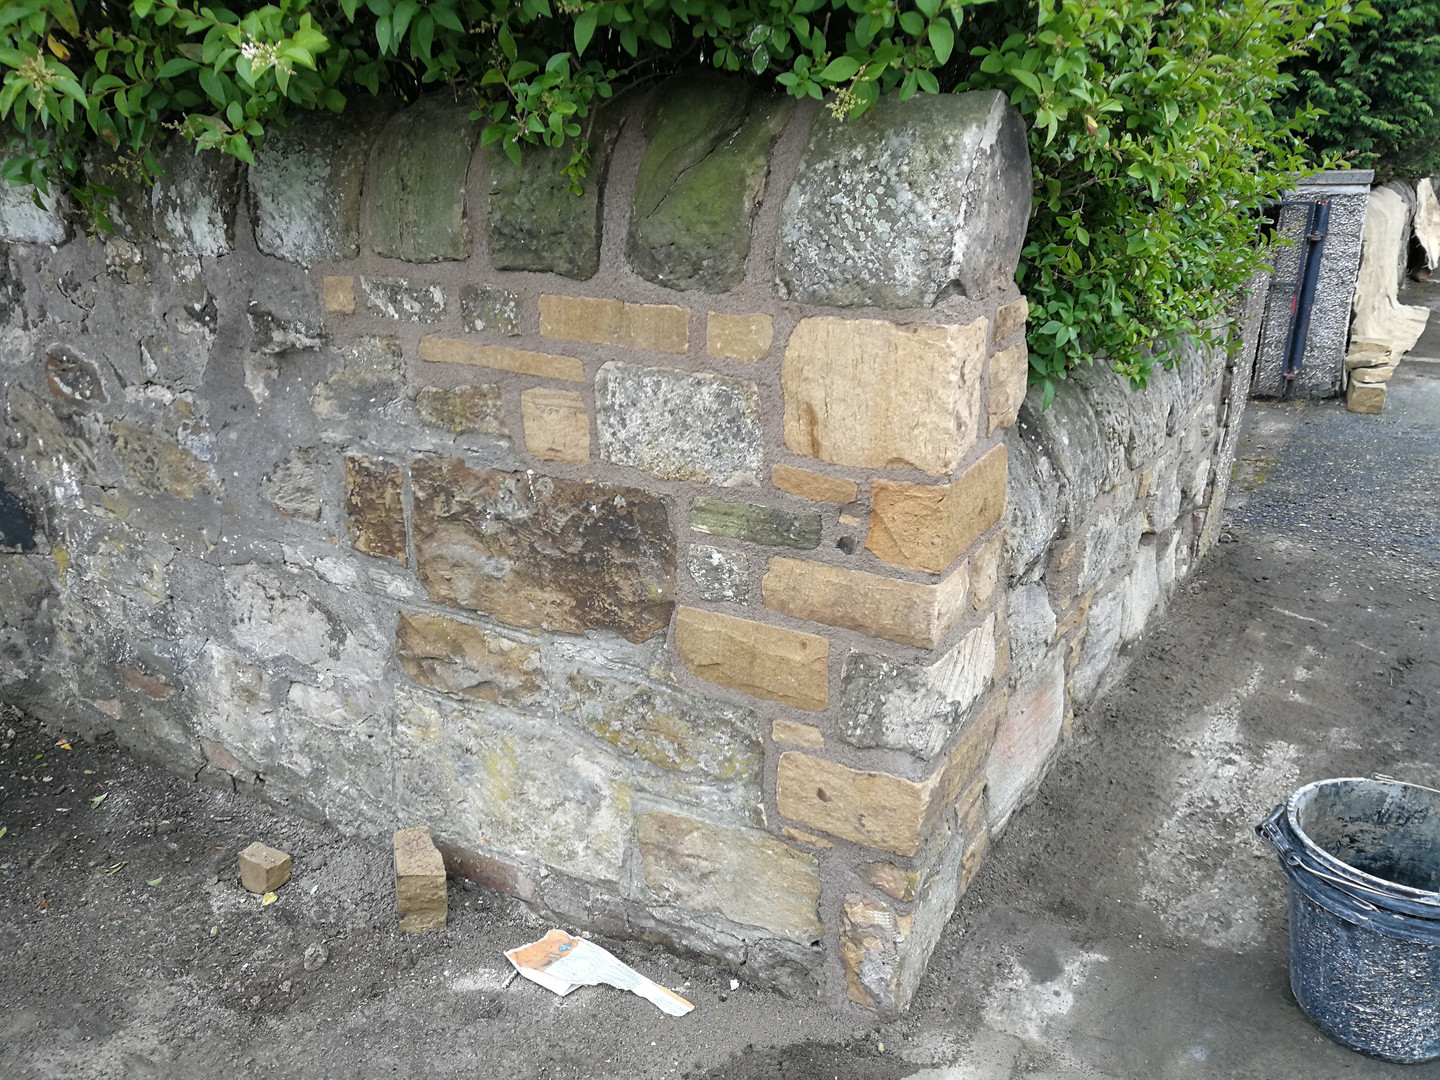 Rebuilt with lime mortar